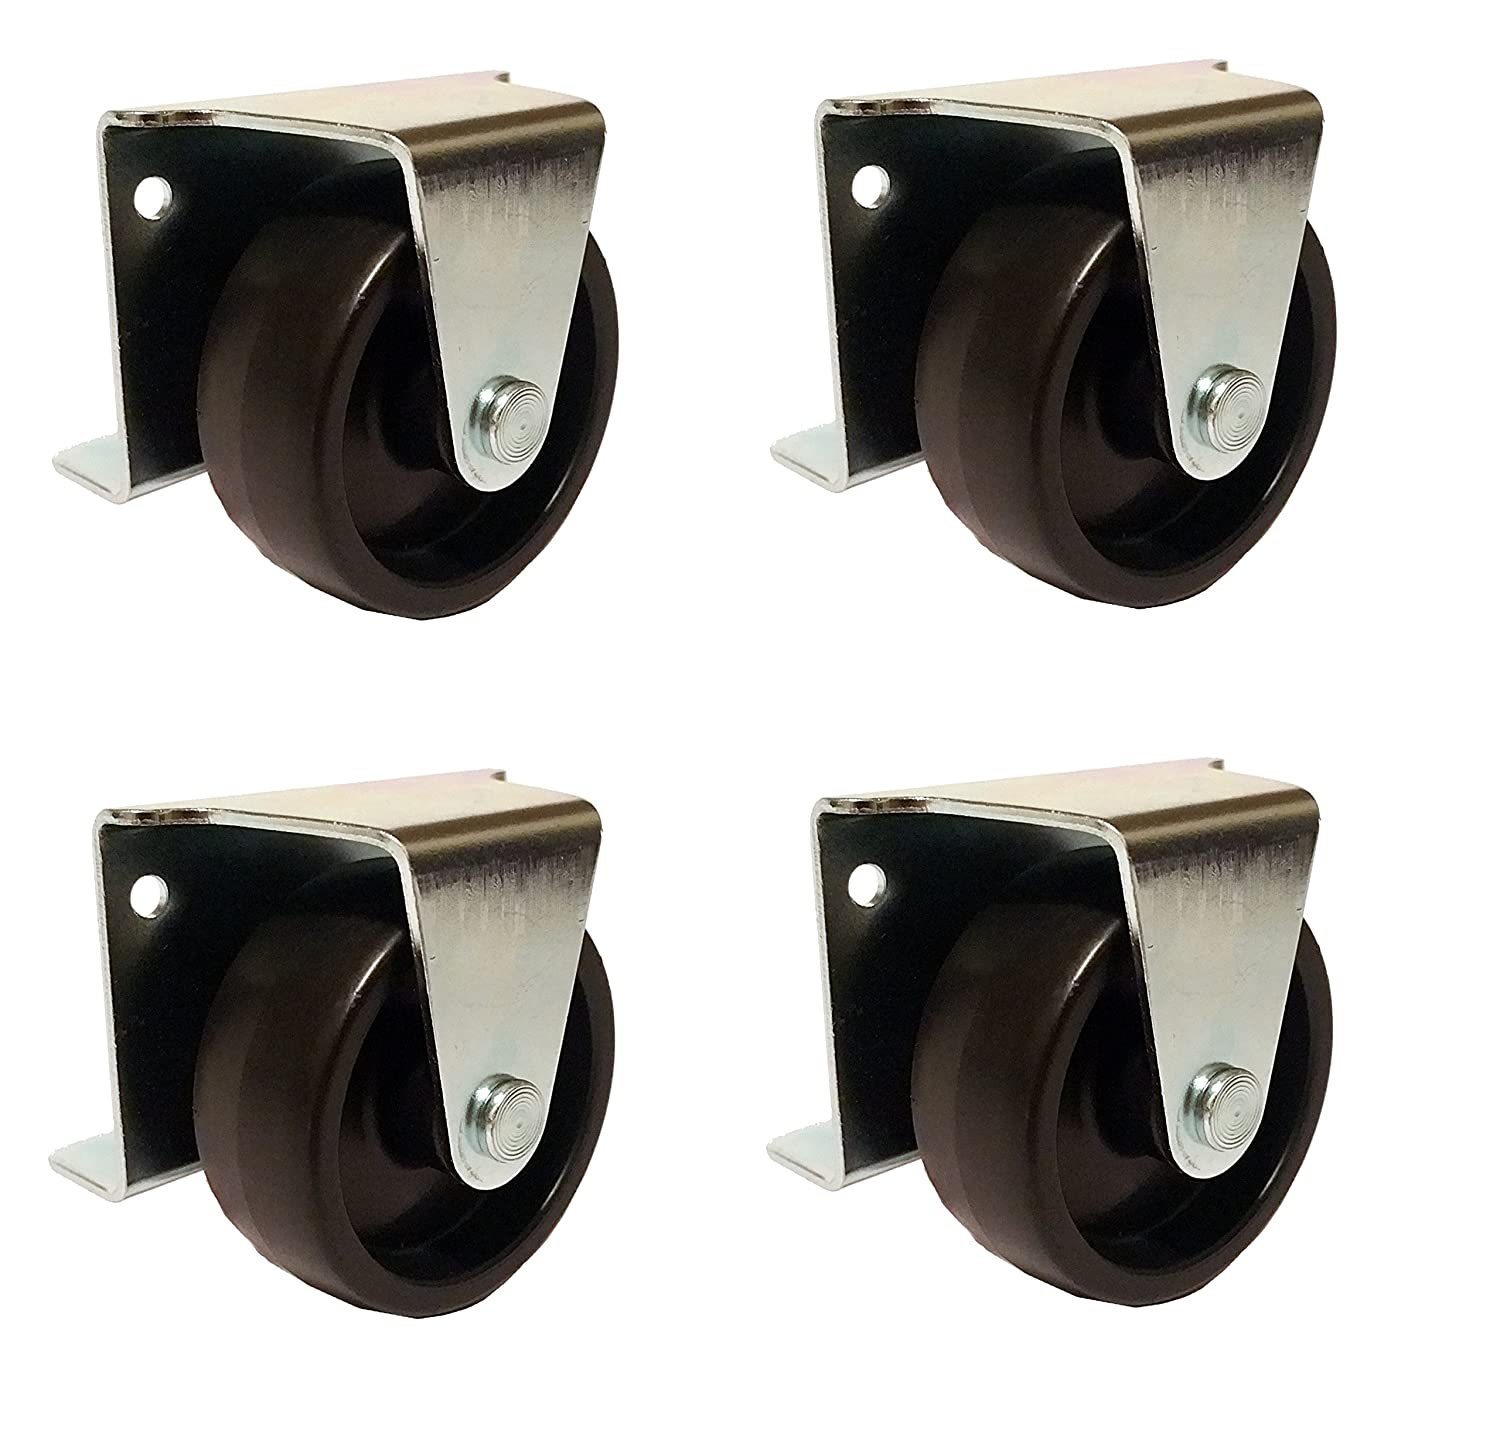 "2"" Inch Low Profile Trundle Casters / Wheels Cabinet Roll-Out Bed - Set of 4"